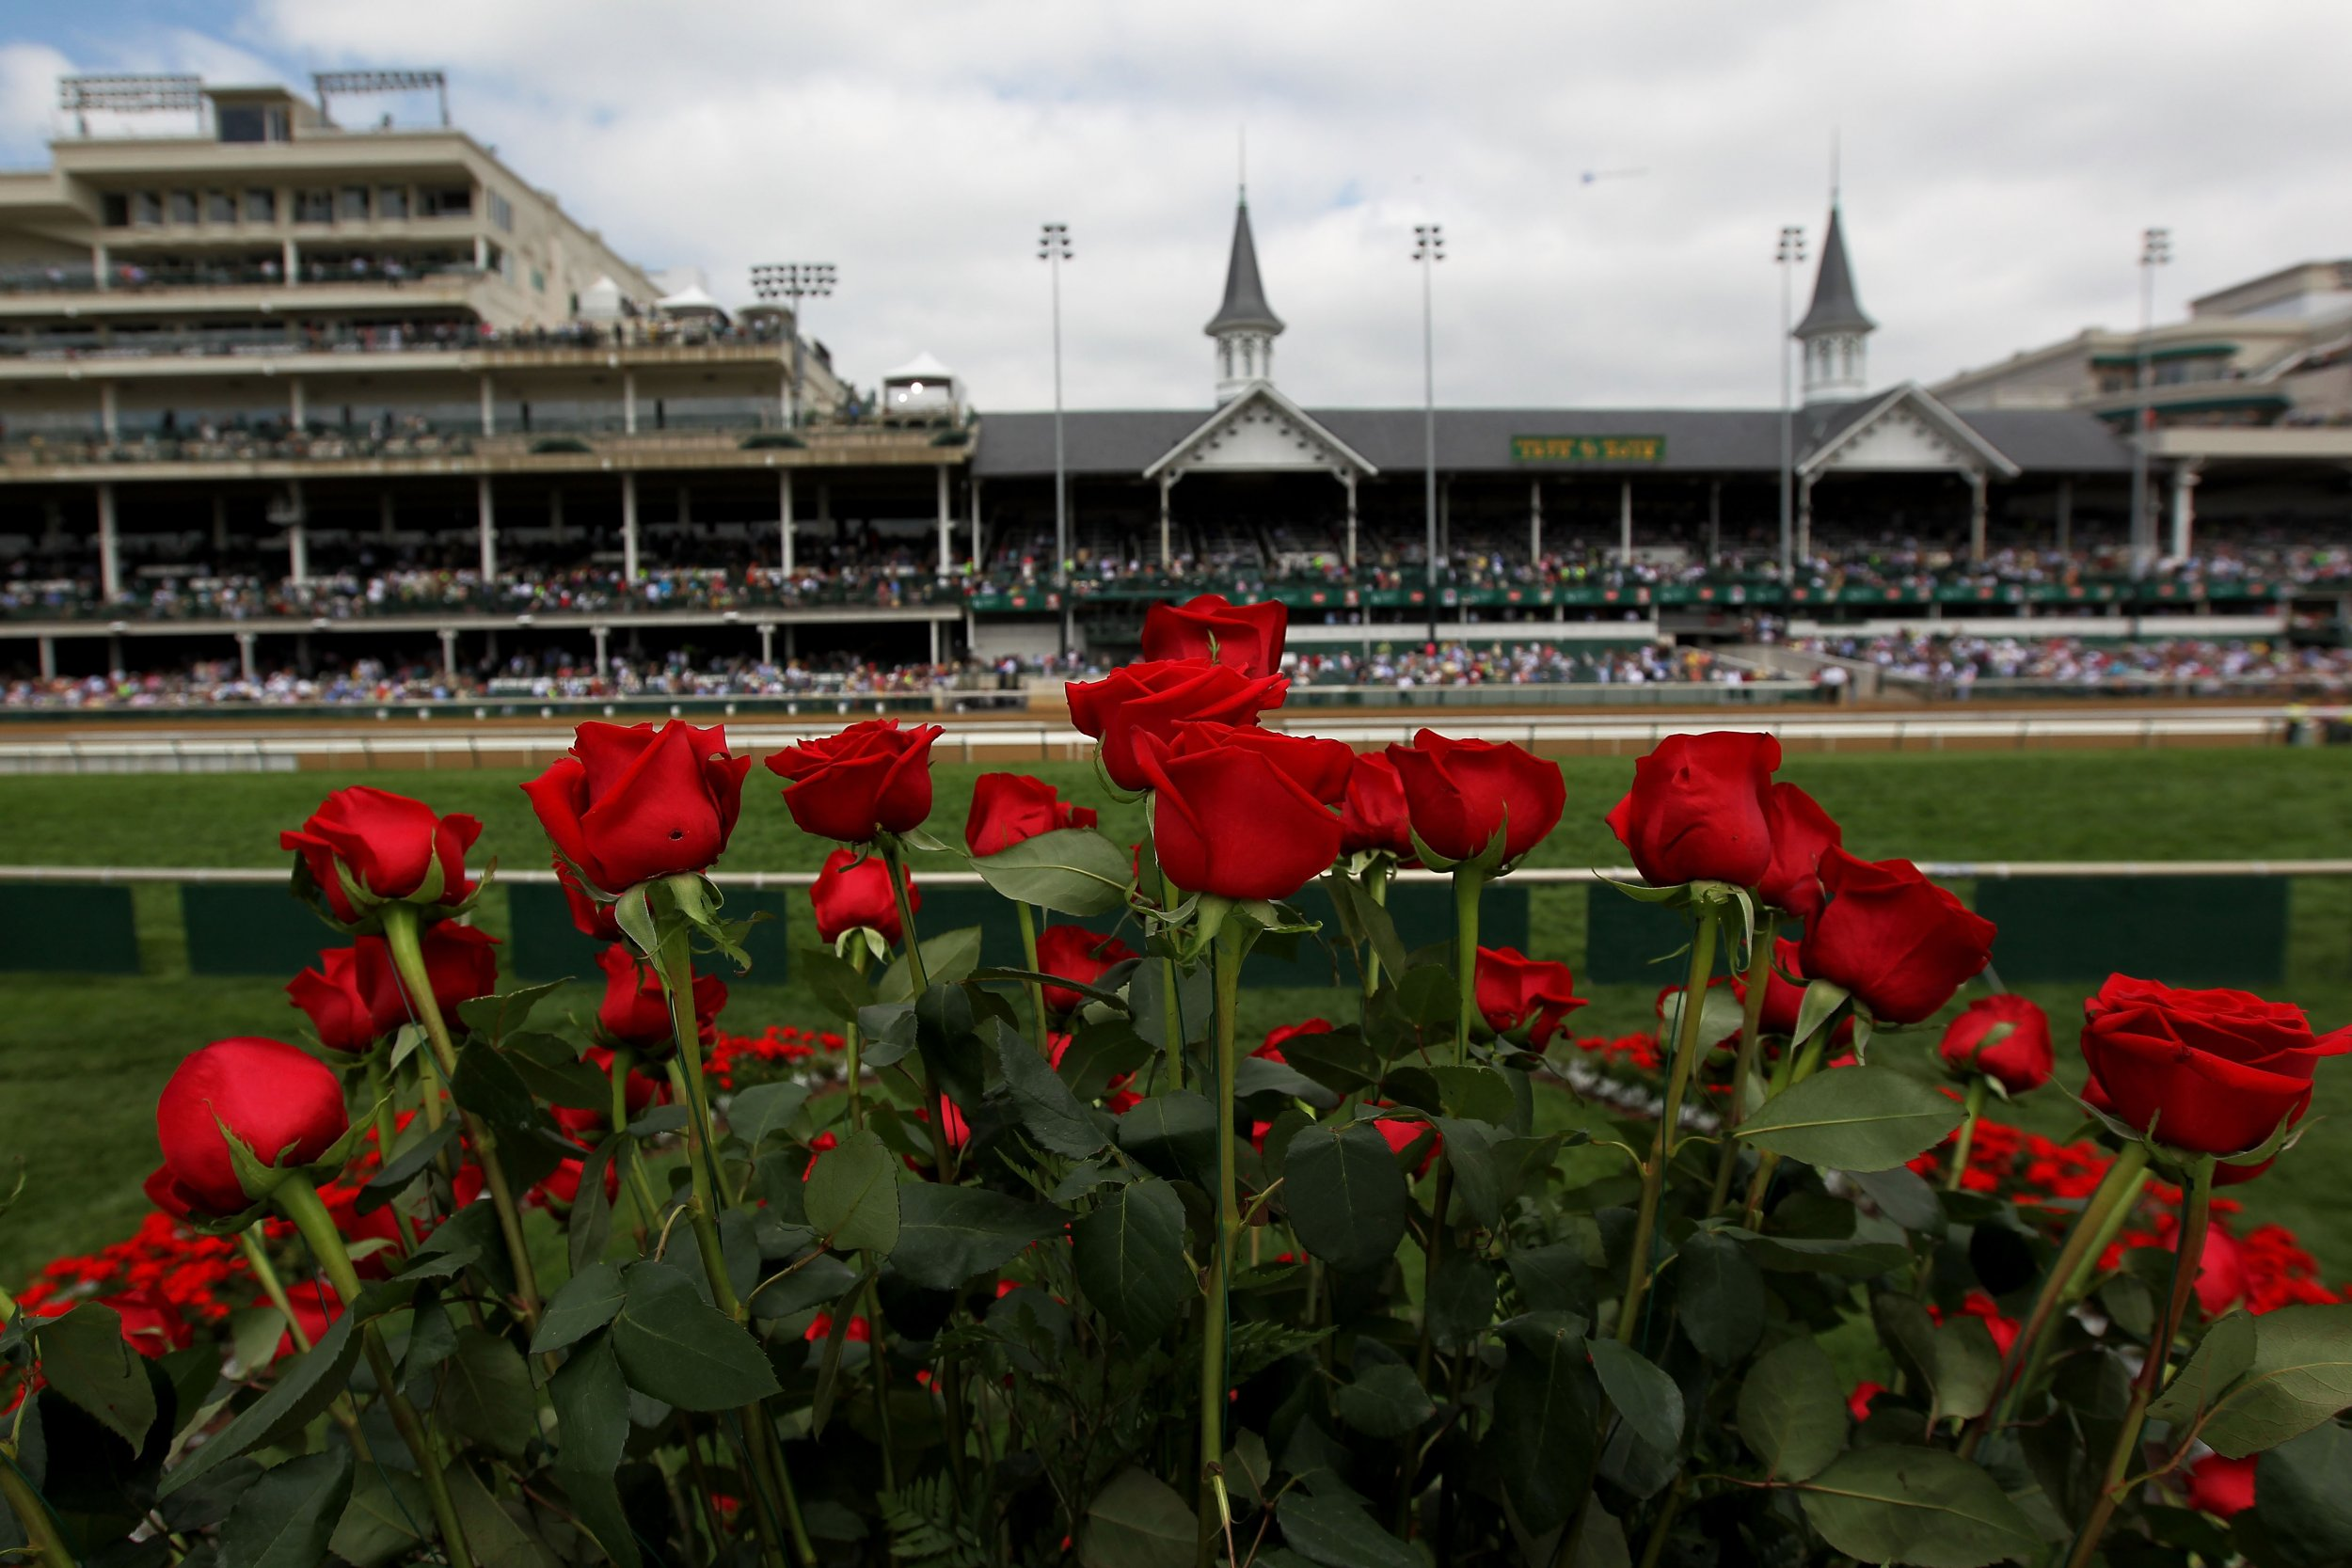 Kentucky Derby favorite Omaha Beach ruled out with throat condition